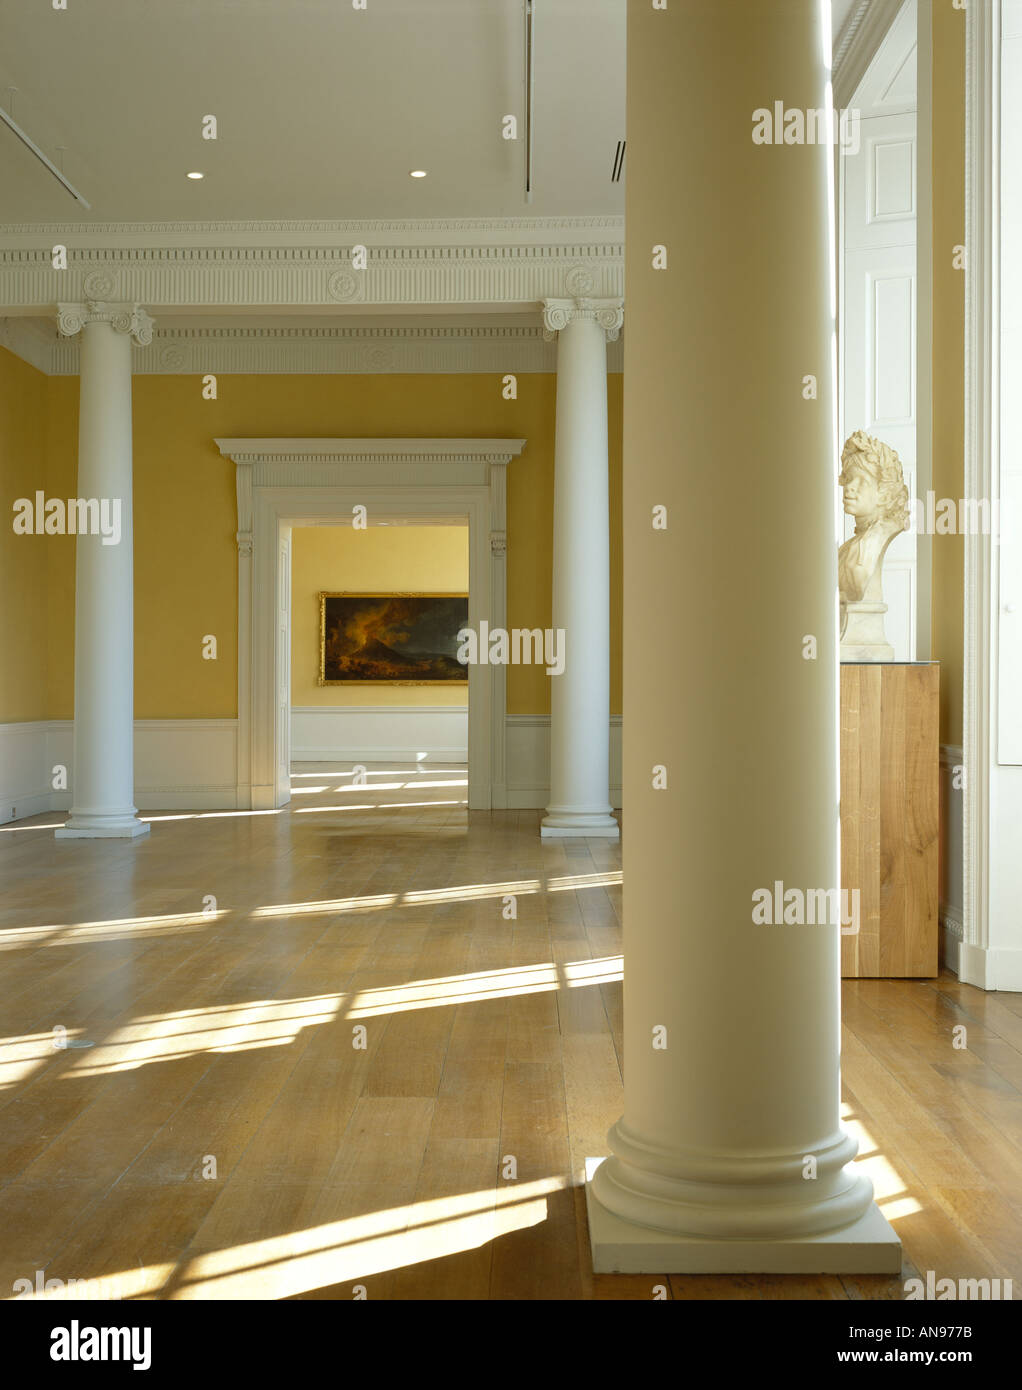 Compton Verney, Warwickshire. Gallery space. Architect: Stanton Williams, Robert Adam - Stock Image